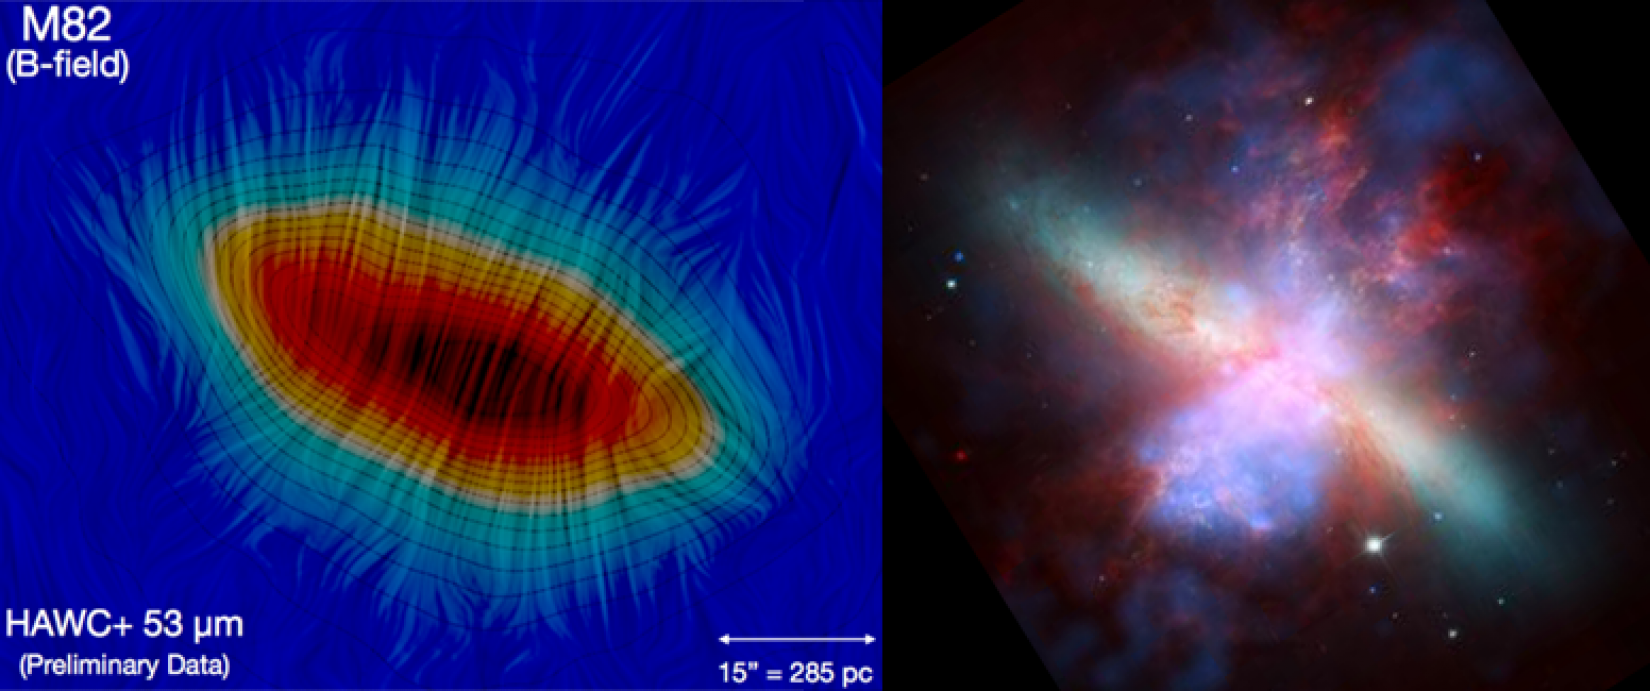 A view of the large-scale magnetic in M82 and multi-wavelength view of the galaxy